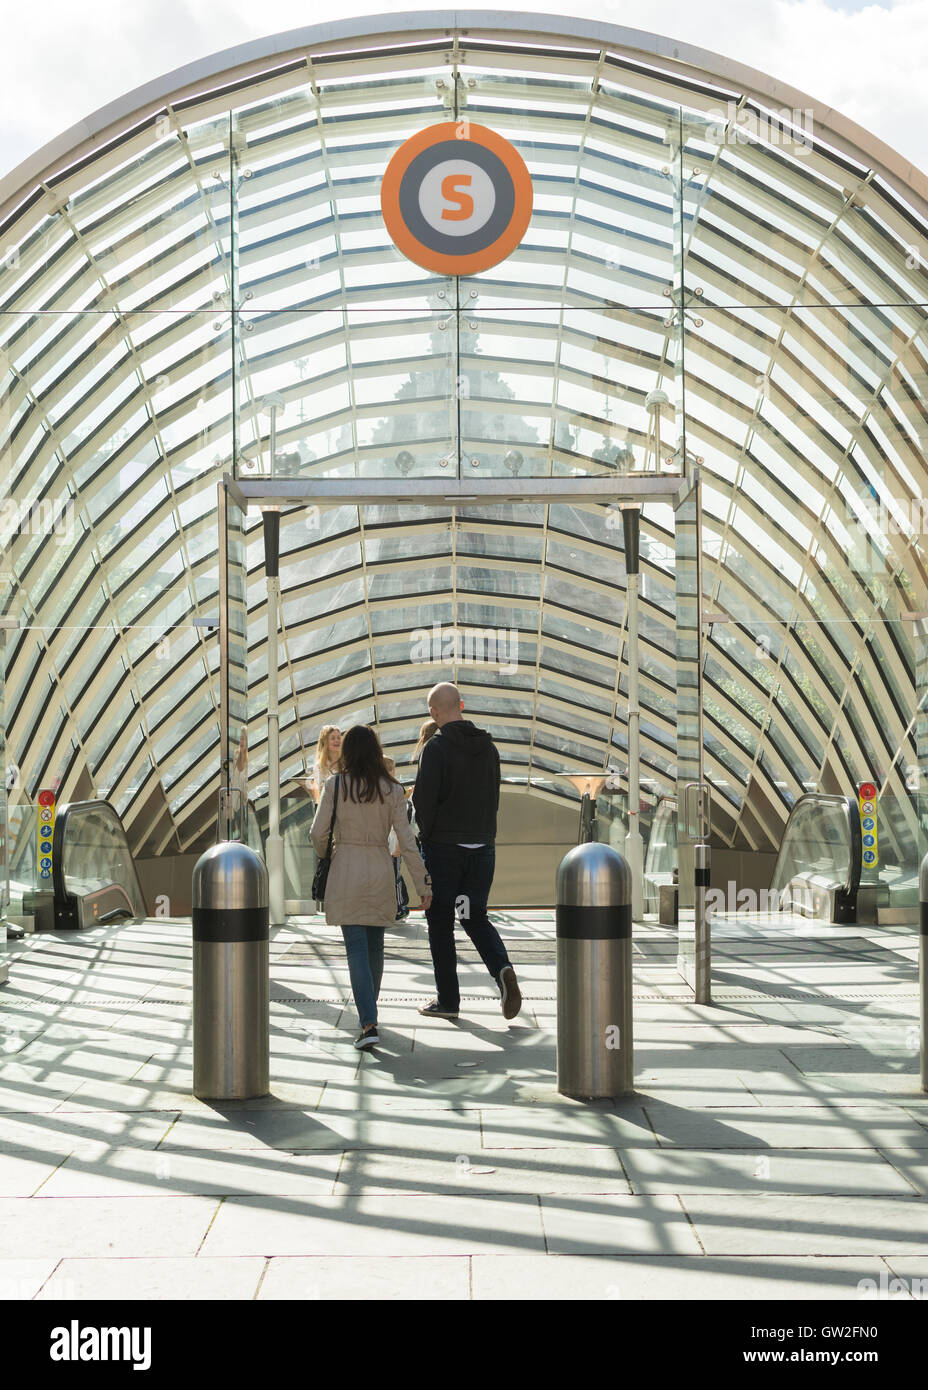 Glasgow Subway - St Enoch Station entrance, Glasgow, Scotland, UK - Stock Image